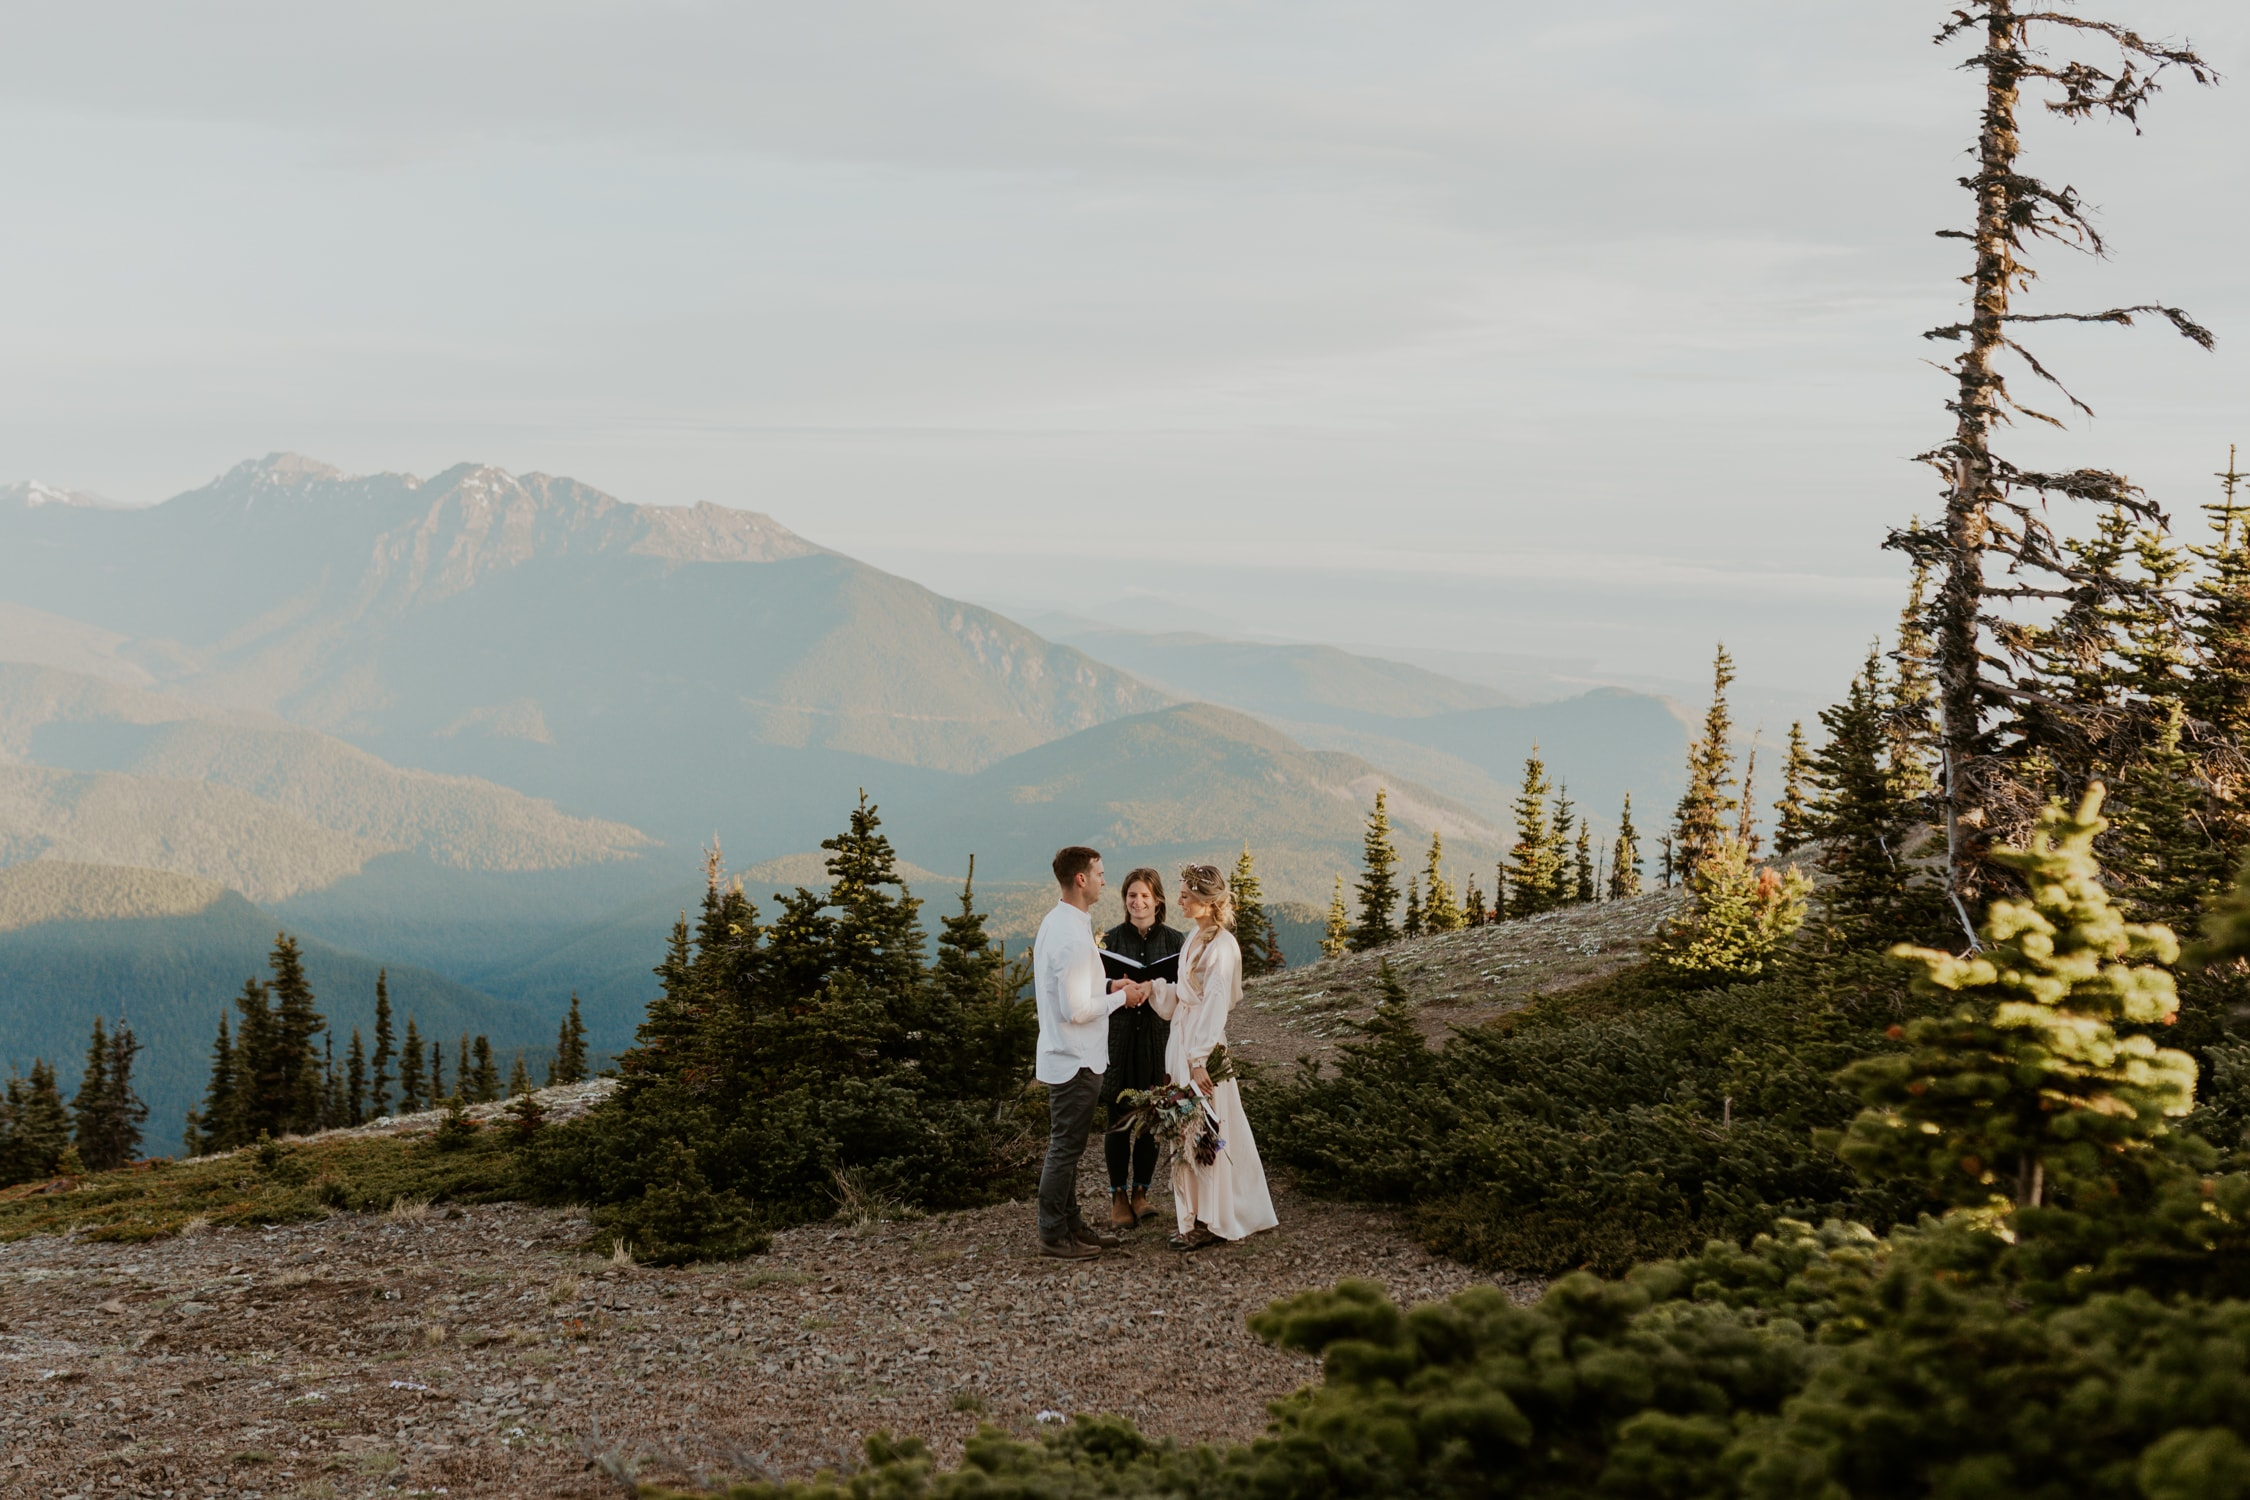 A couple exchanging vows on their wedding day at Hurricane Ridge in Olympic National Park.